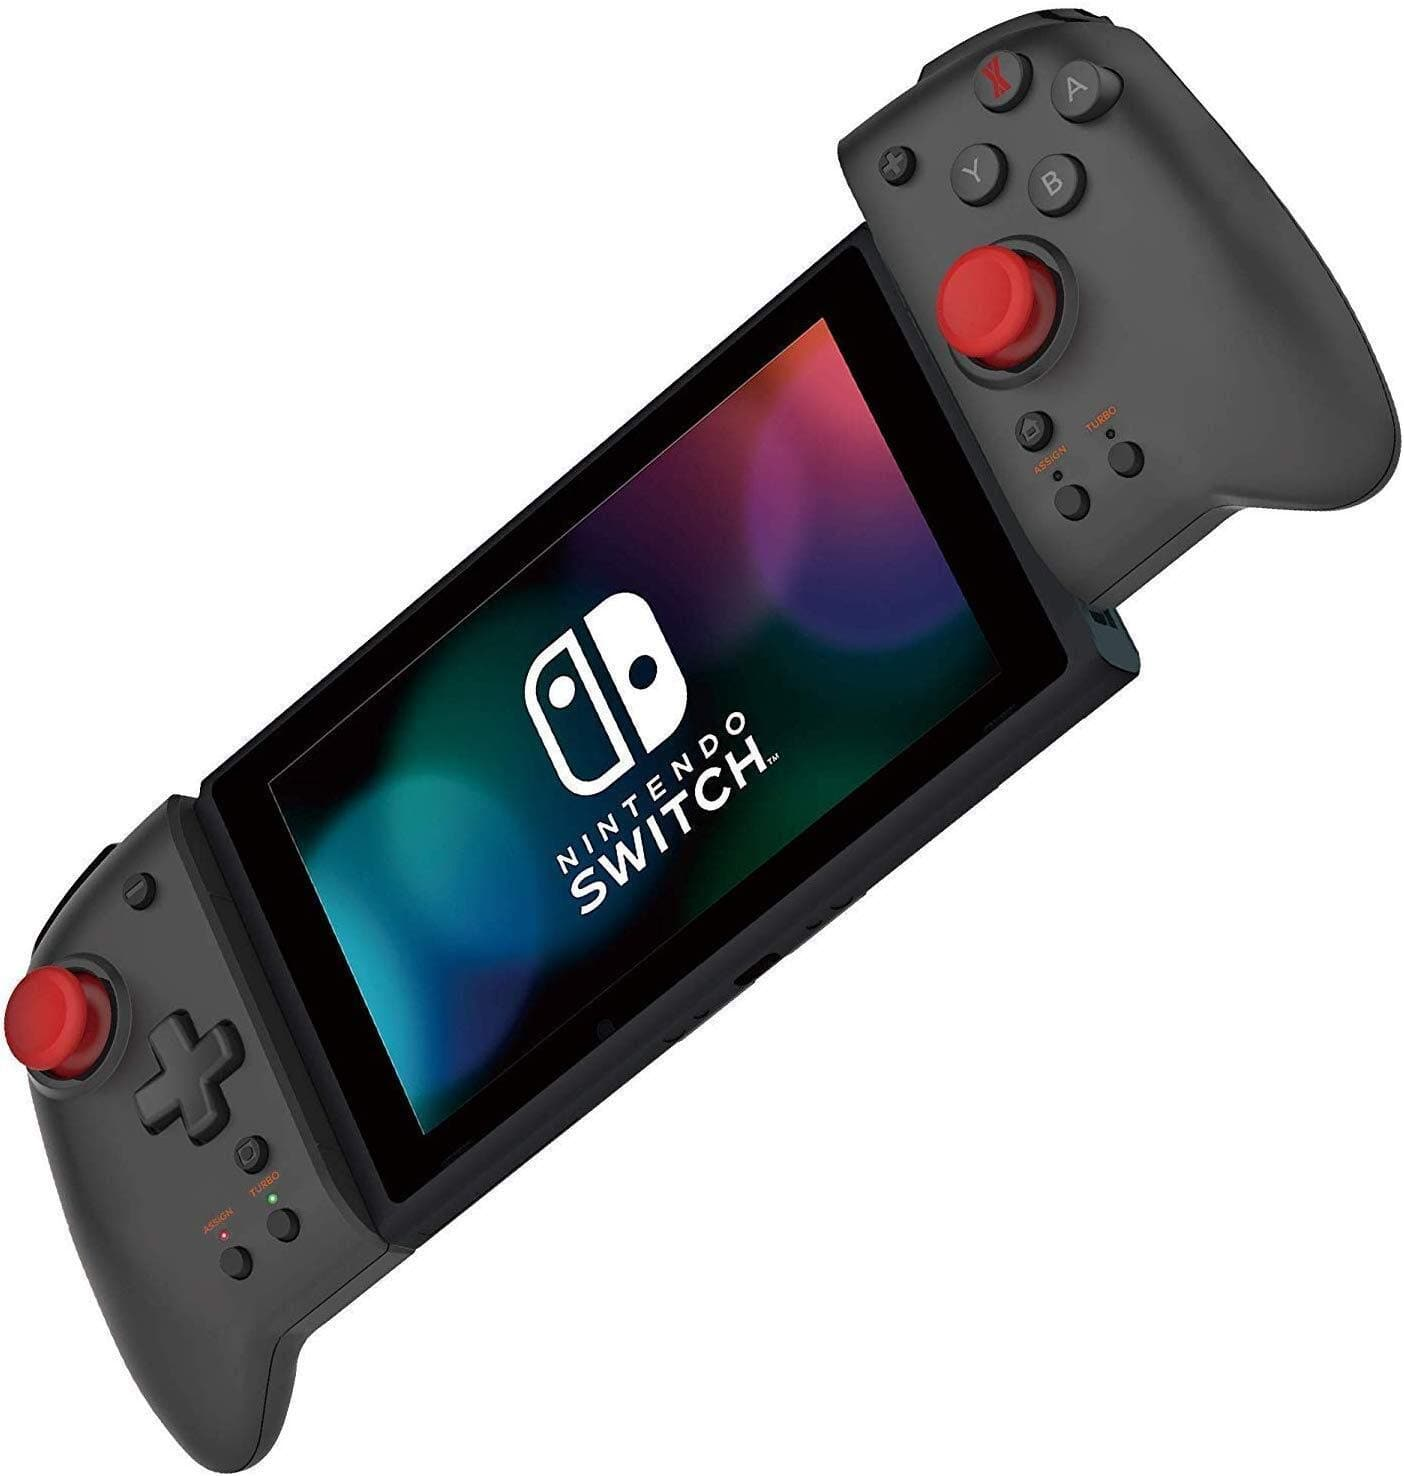 HORI Nintendo Switch Split Pad Pro (Daemon X Machina Edition) Ergonomic Controller for Handheld Mode - Officially Licensed By Nintendo - Nintendo Switch $49.99